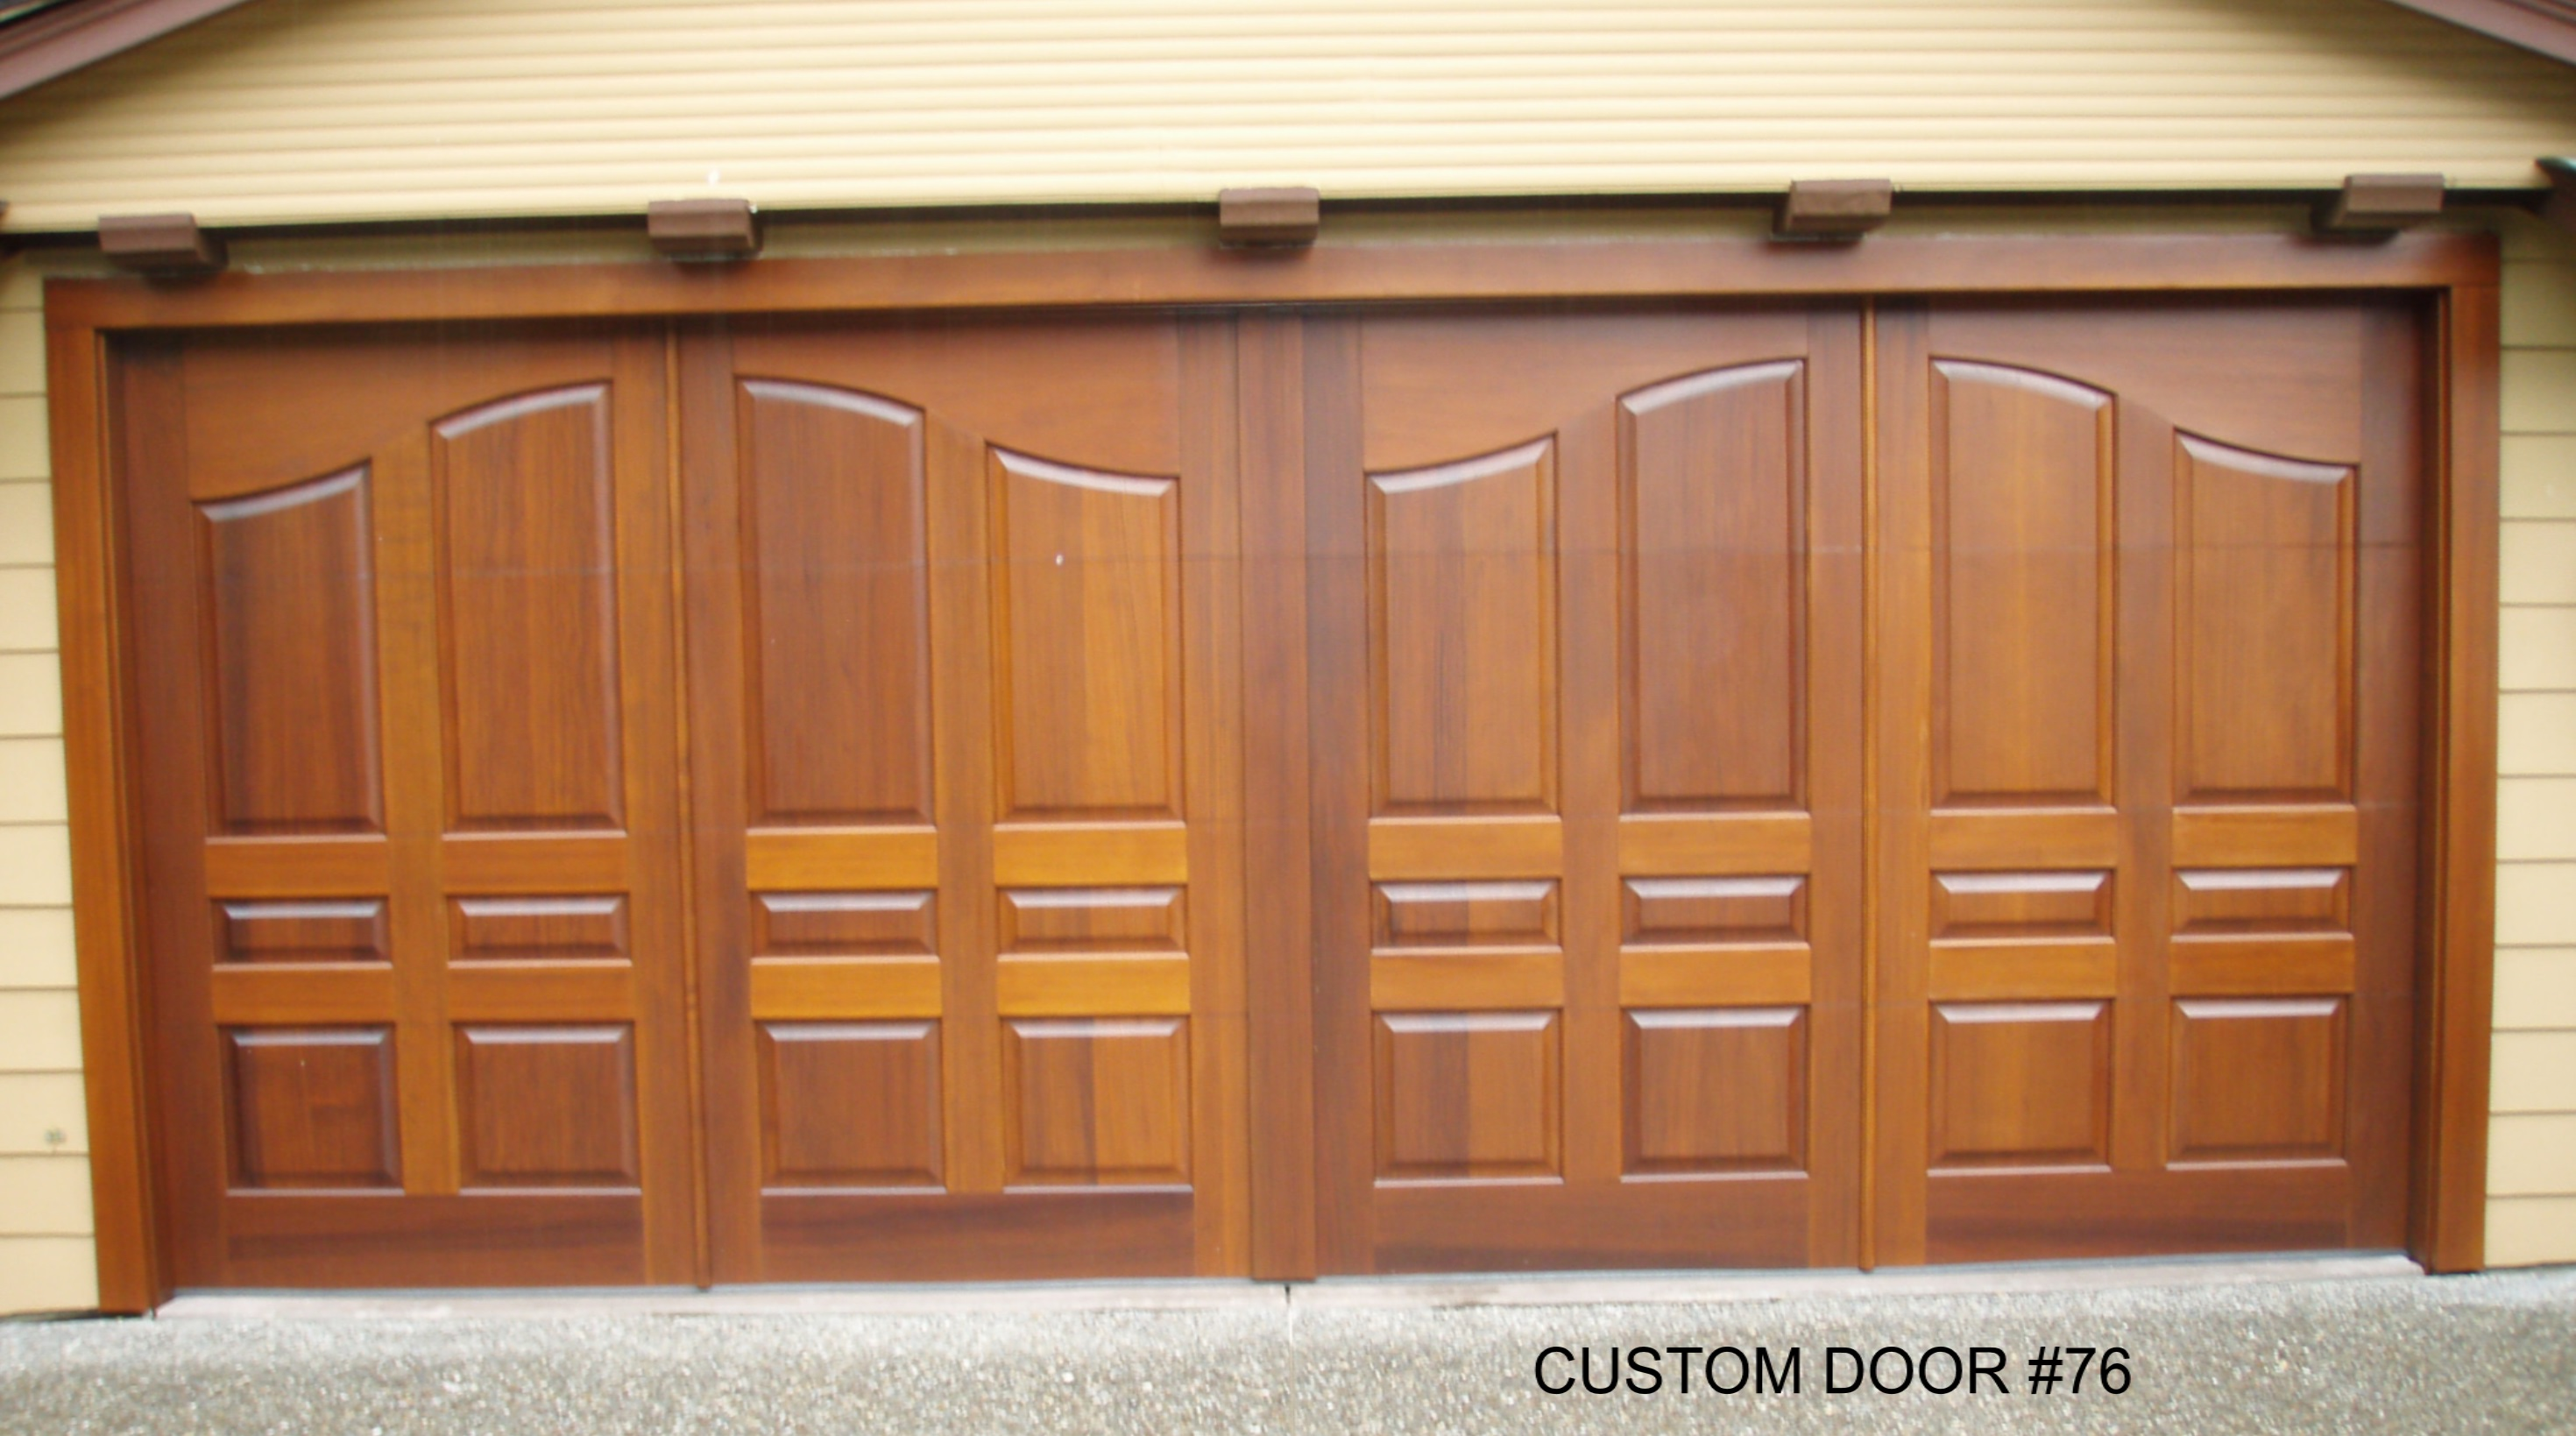 Enlarge Custom Door #76